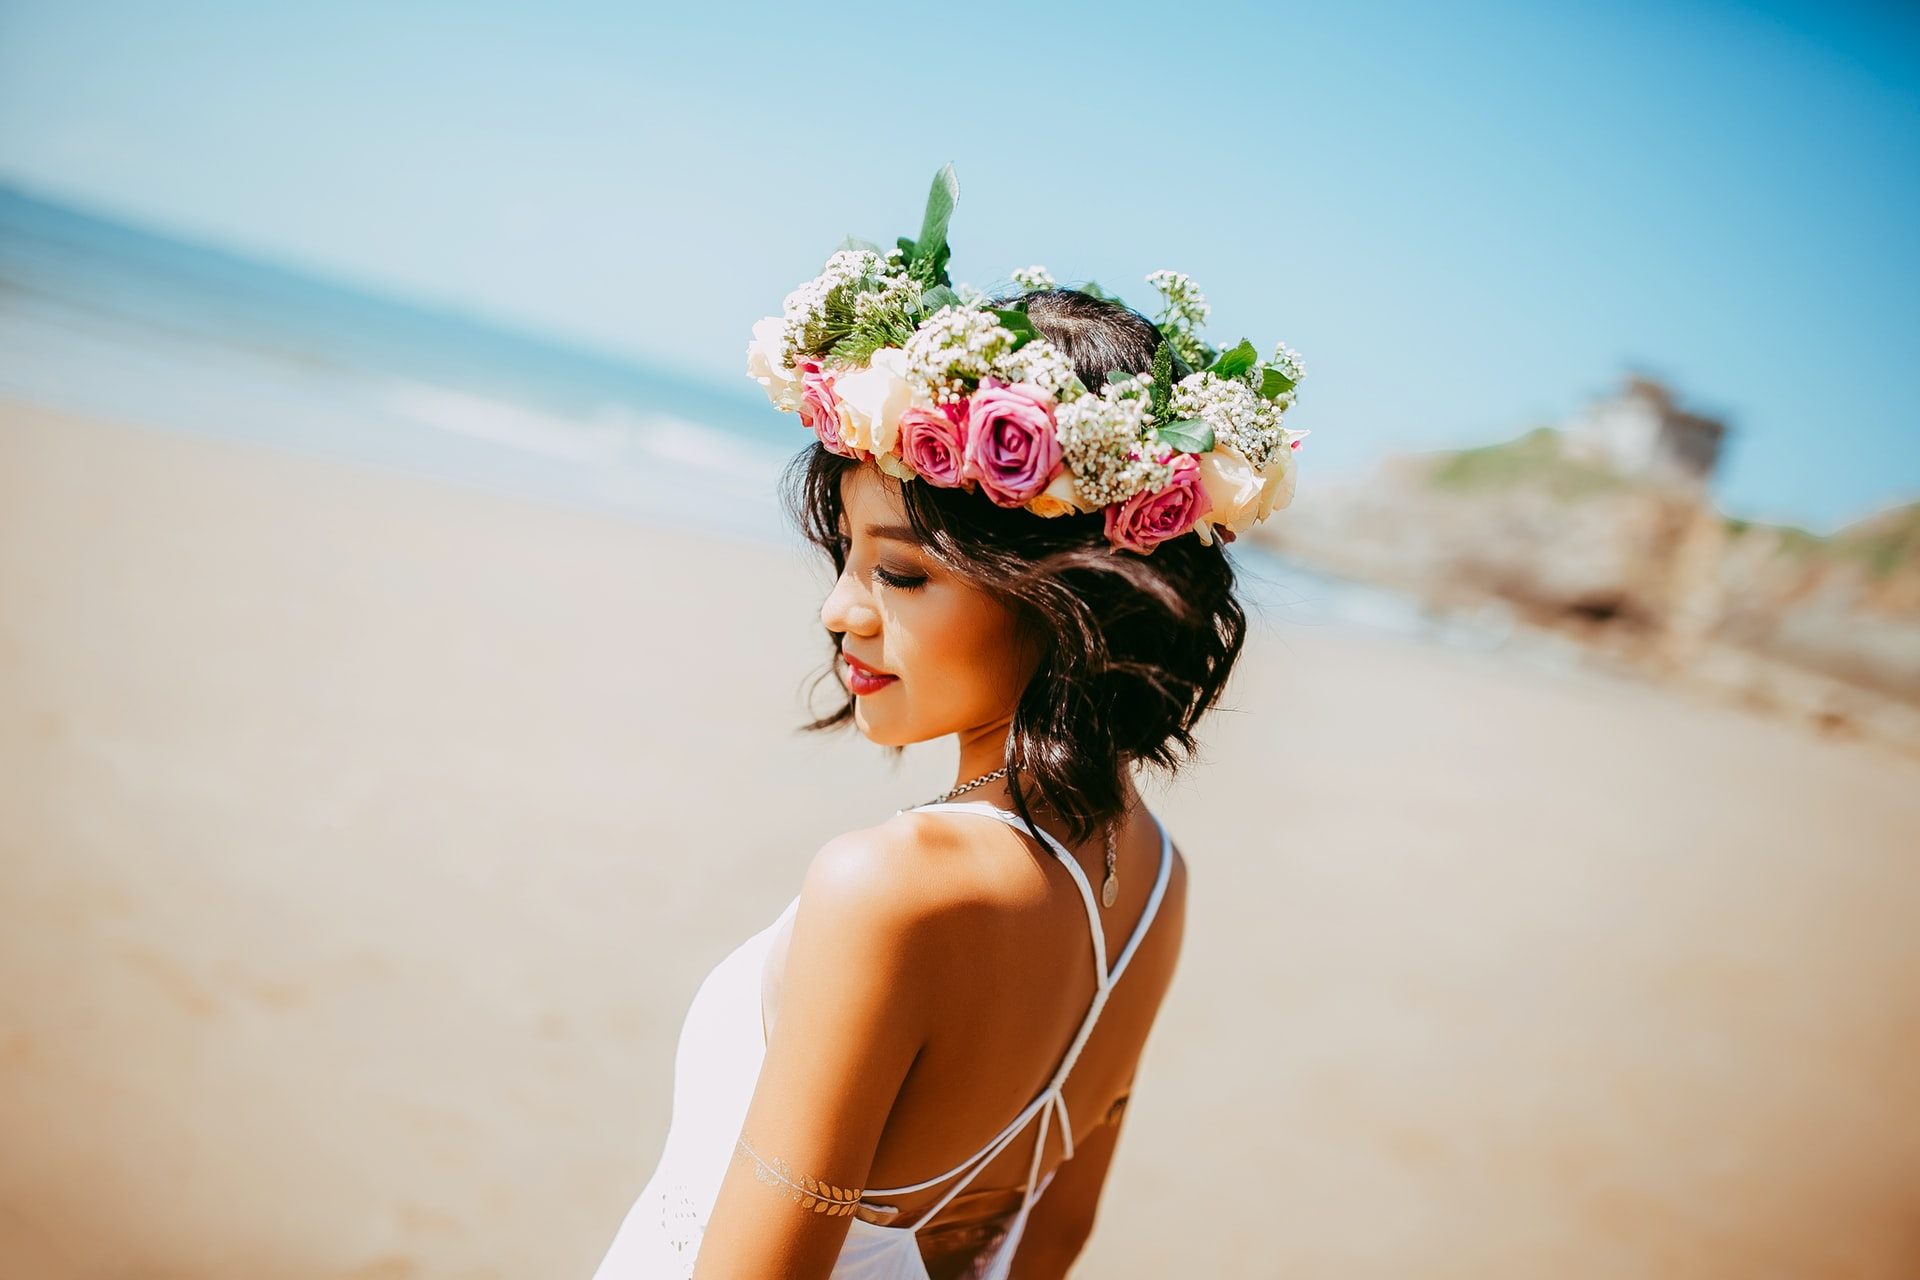 asian philippine girl with flowers in hair